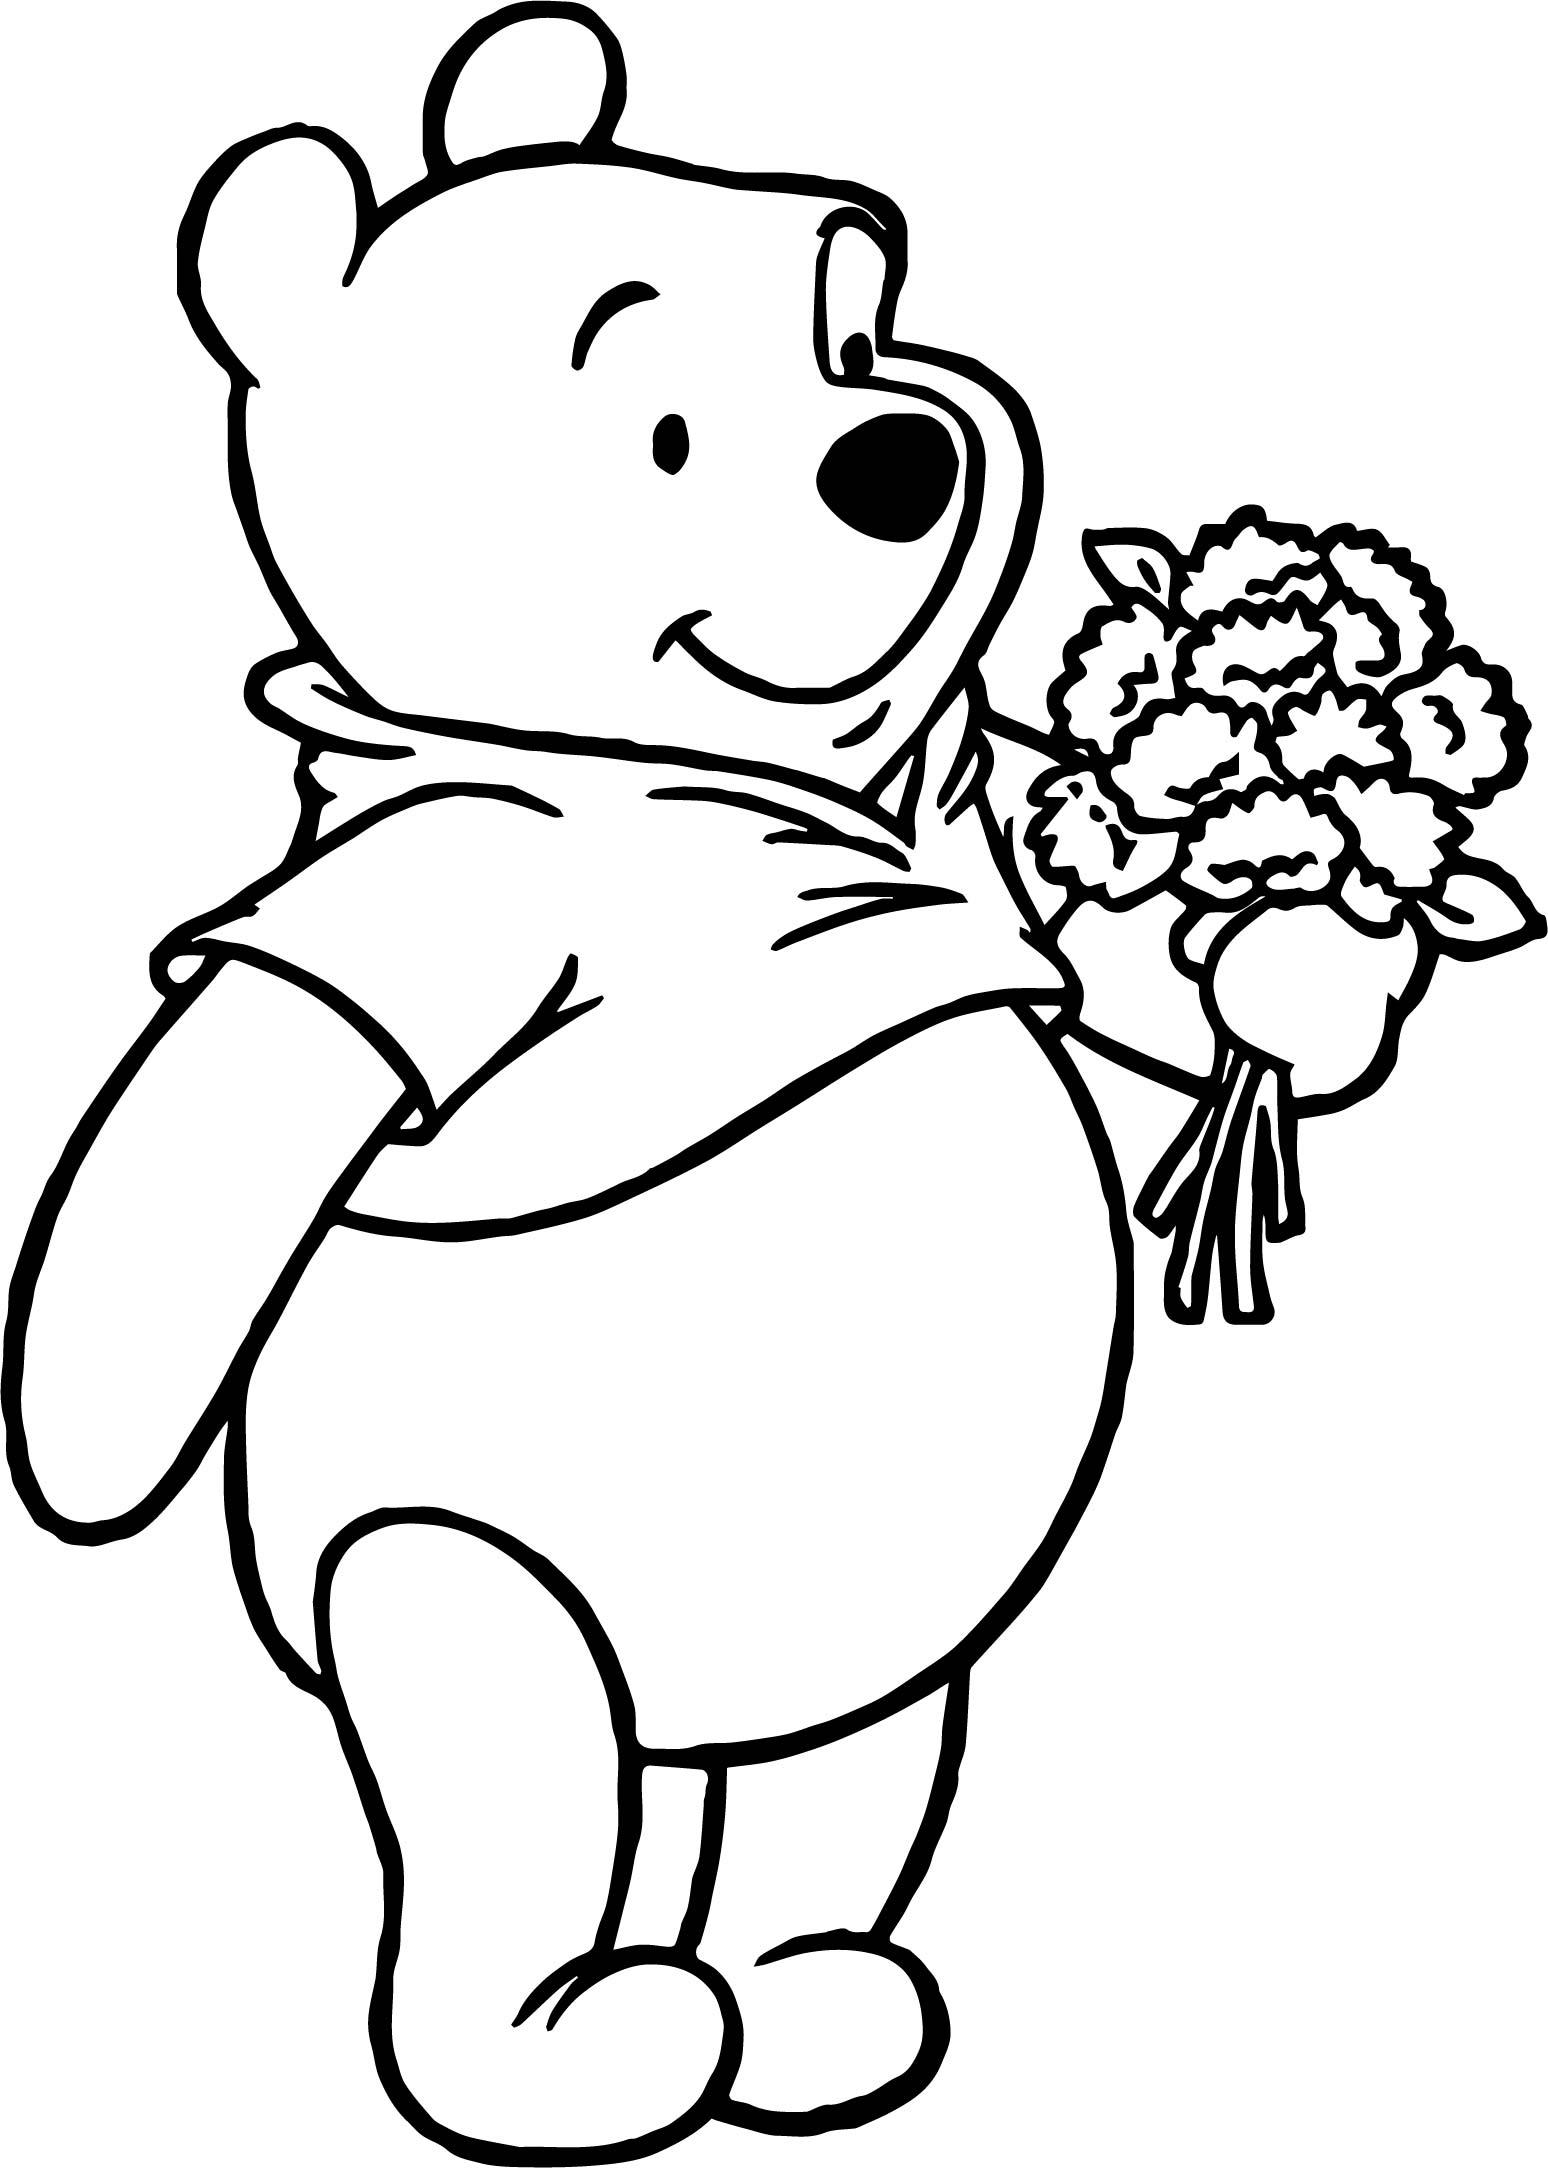 Winnie The Pooh Flower Coloring Page